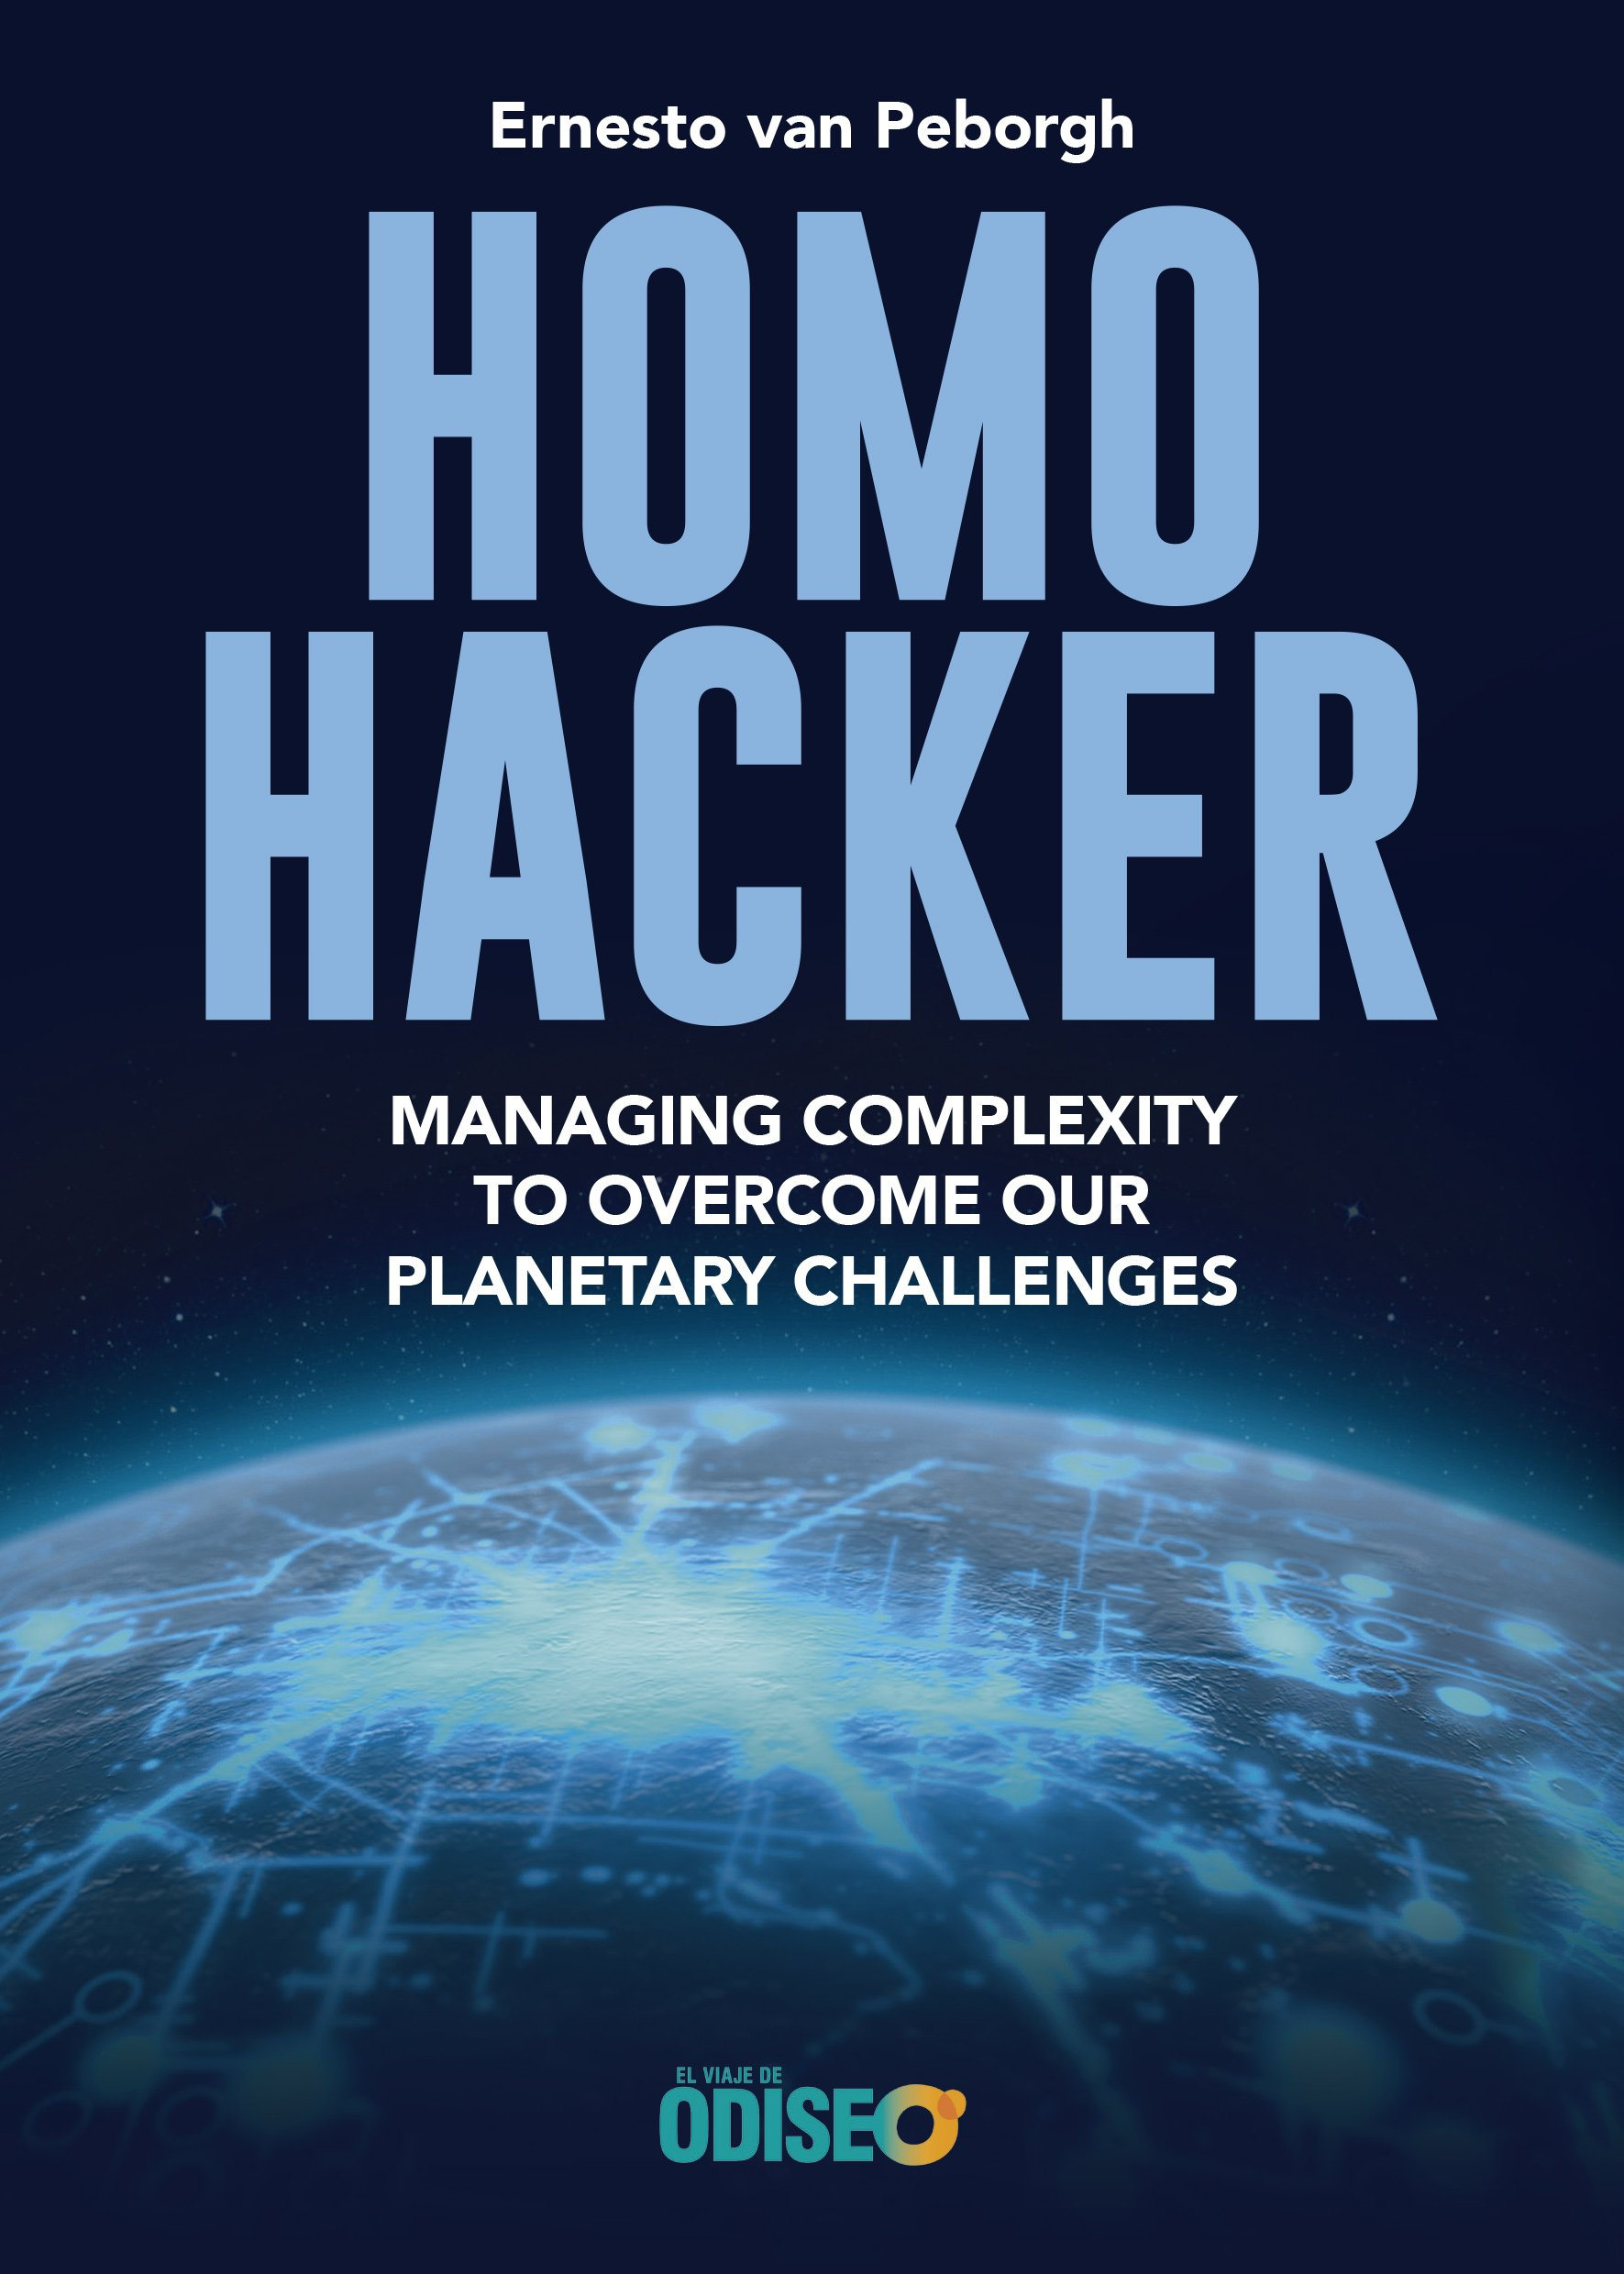 HOMO HACKER: MANAGING COMPLEXITY TO OVERCOME OUR PLANETARY CHALLENGES